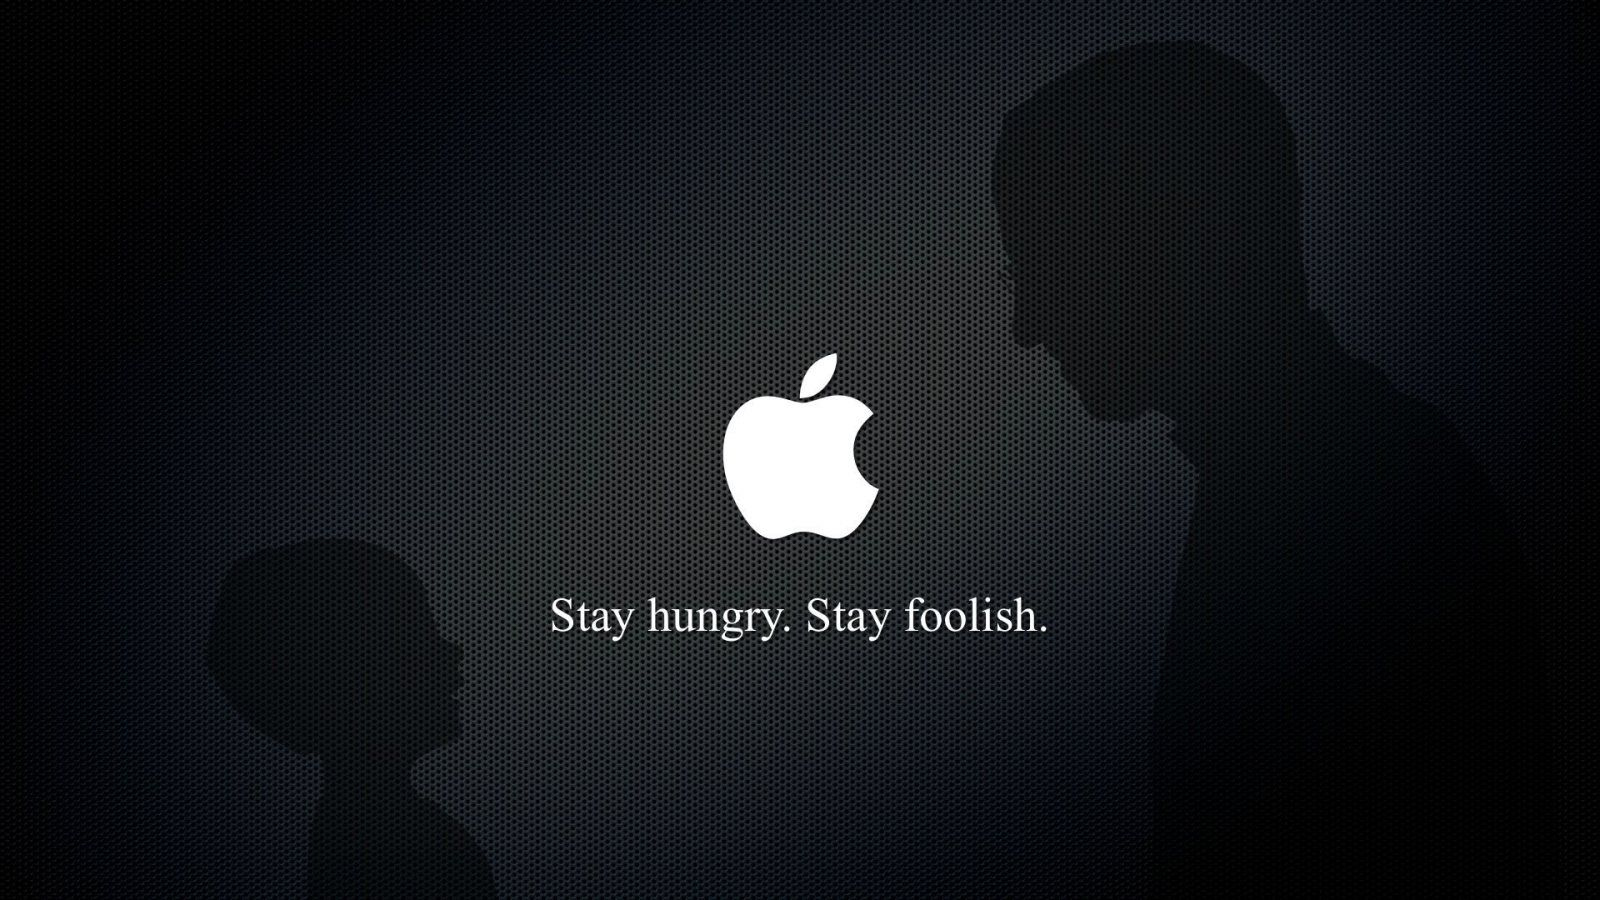 Apple Wallpapers Quotes. QuotesGram